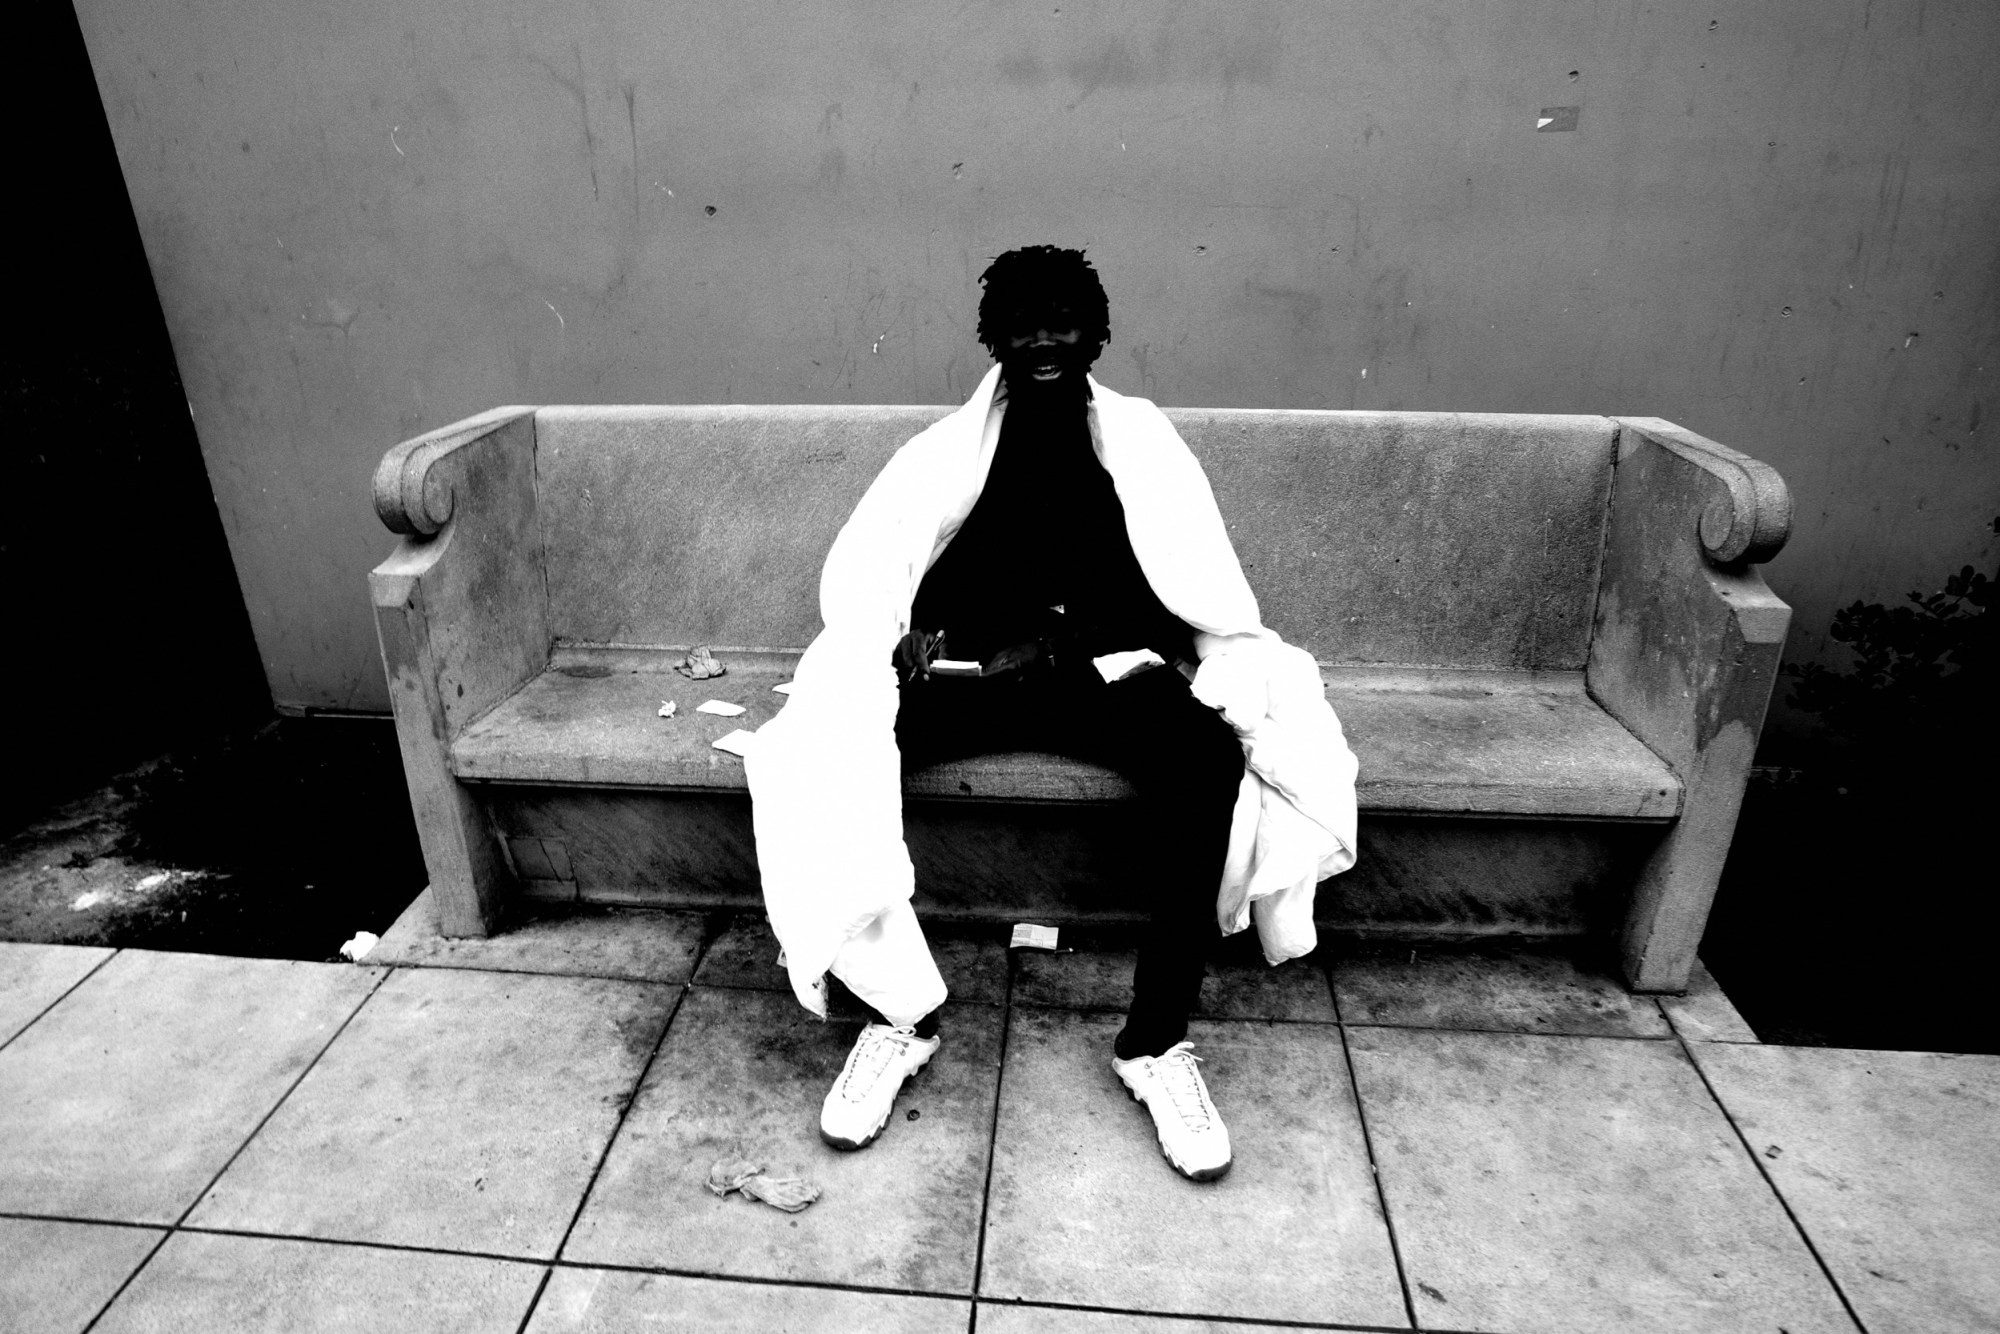 Jesus monochrome downtown la